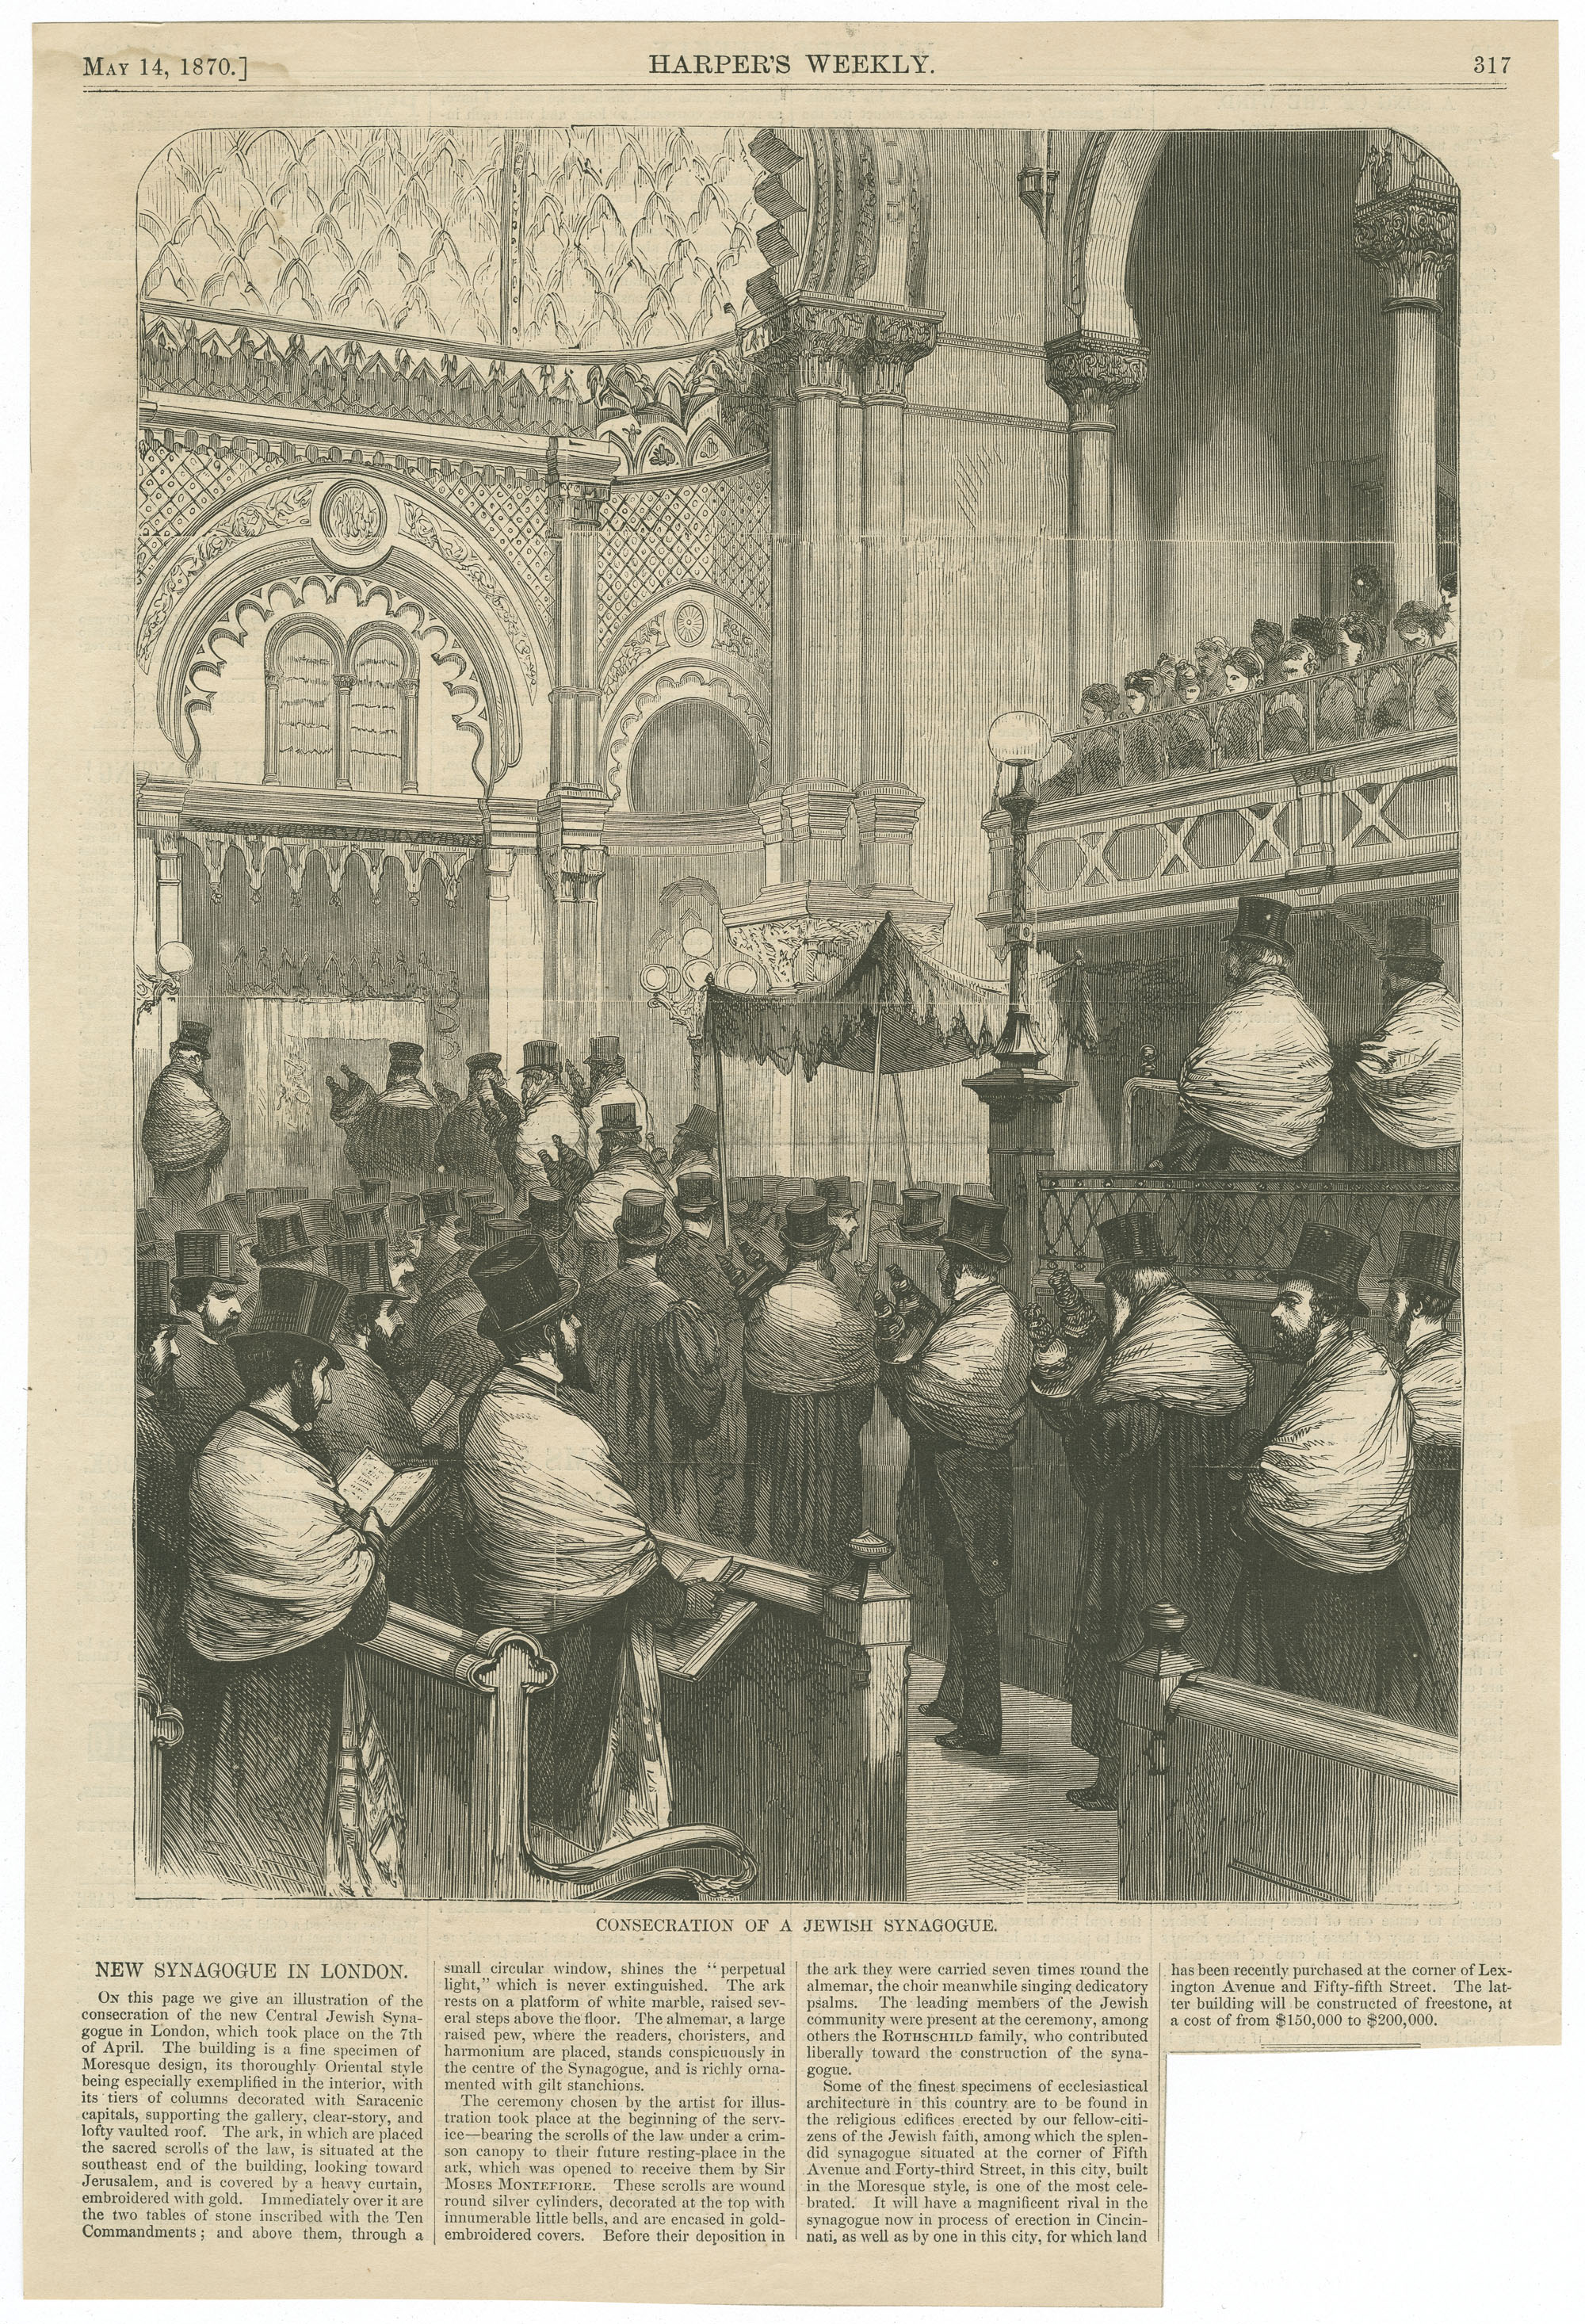 Consecration of a Jewish Synagogue